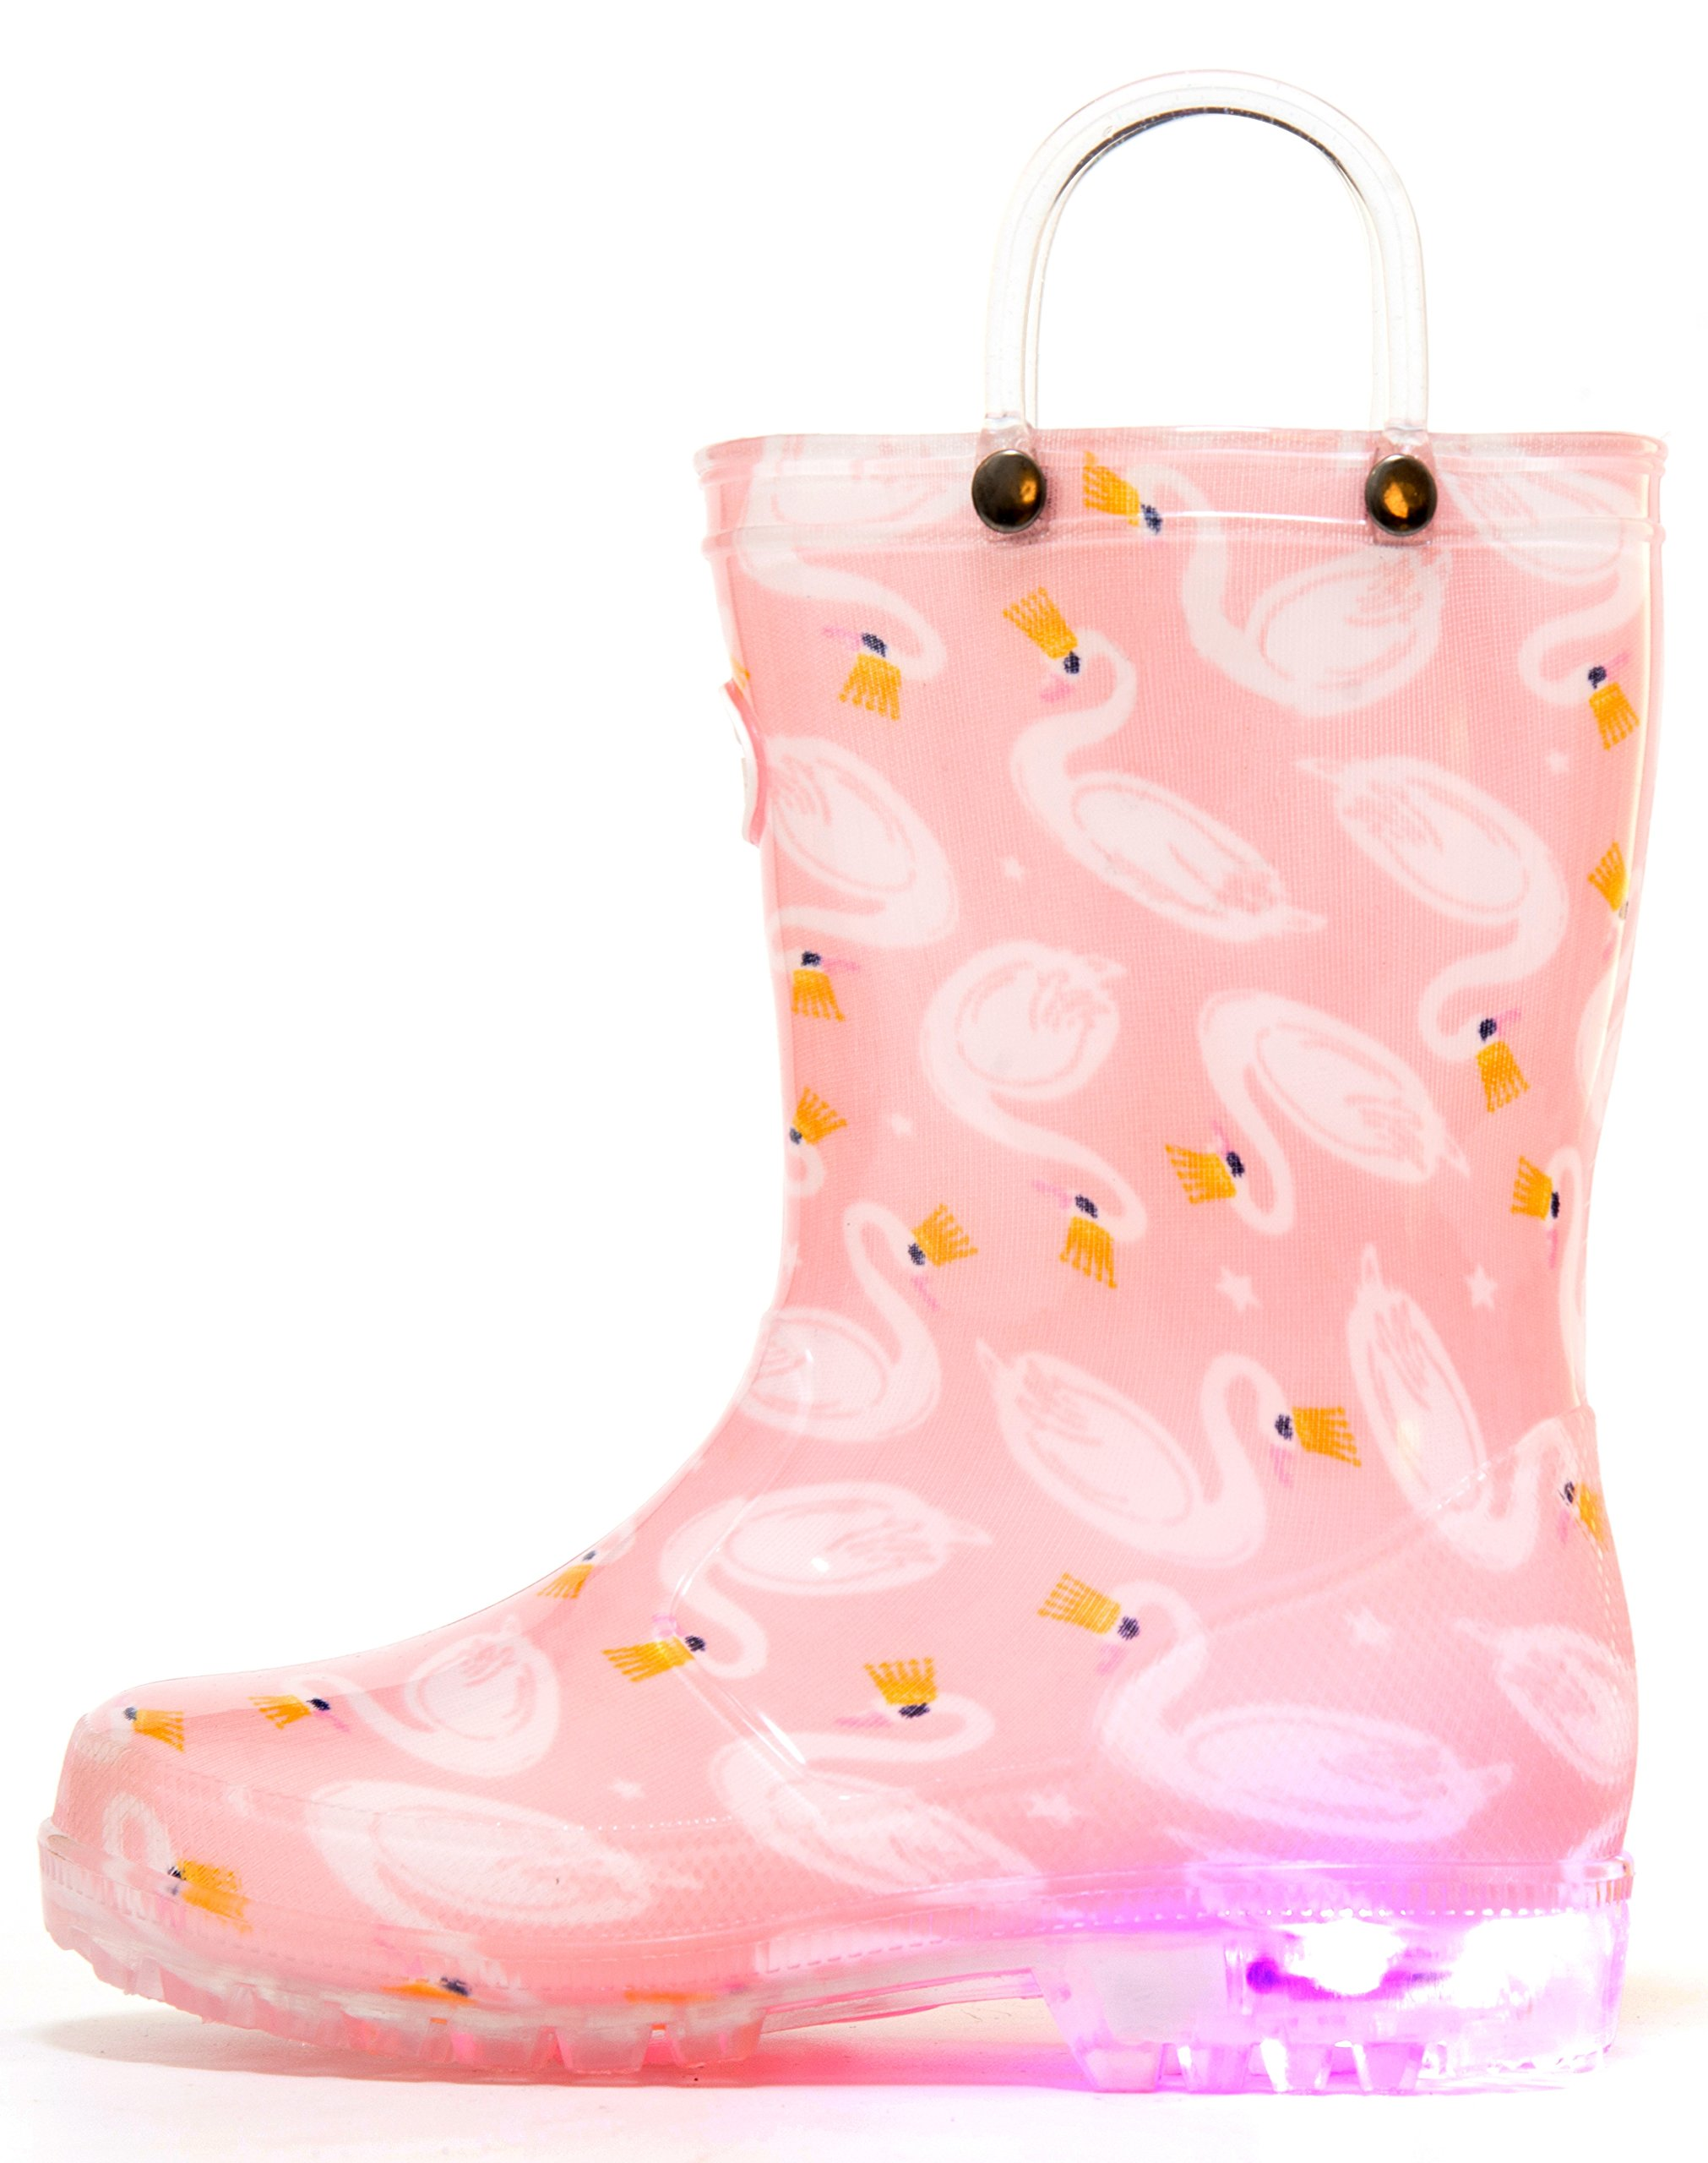 Outee Kids Toddler Girls Rain Boots Waterproof Light Up Lightweight Pink Swan Cute Lovely Funny Print with Easy-On Handles Classic Comfortable (Size 11,Pink)